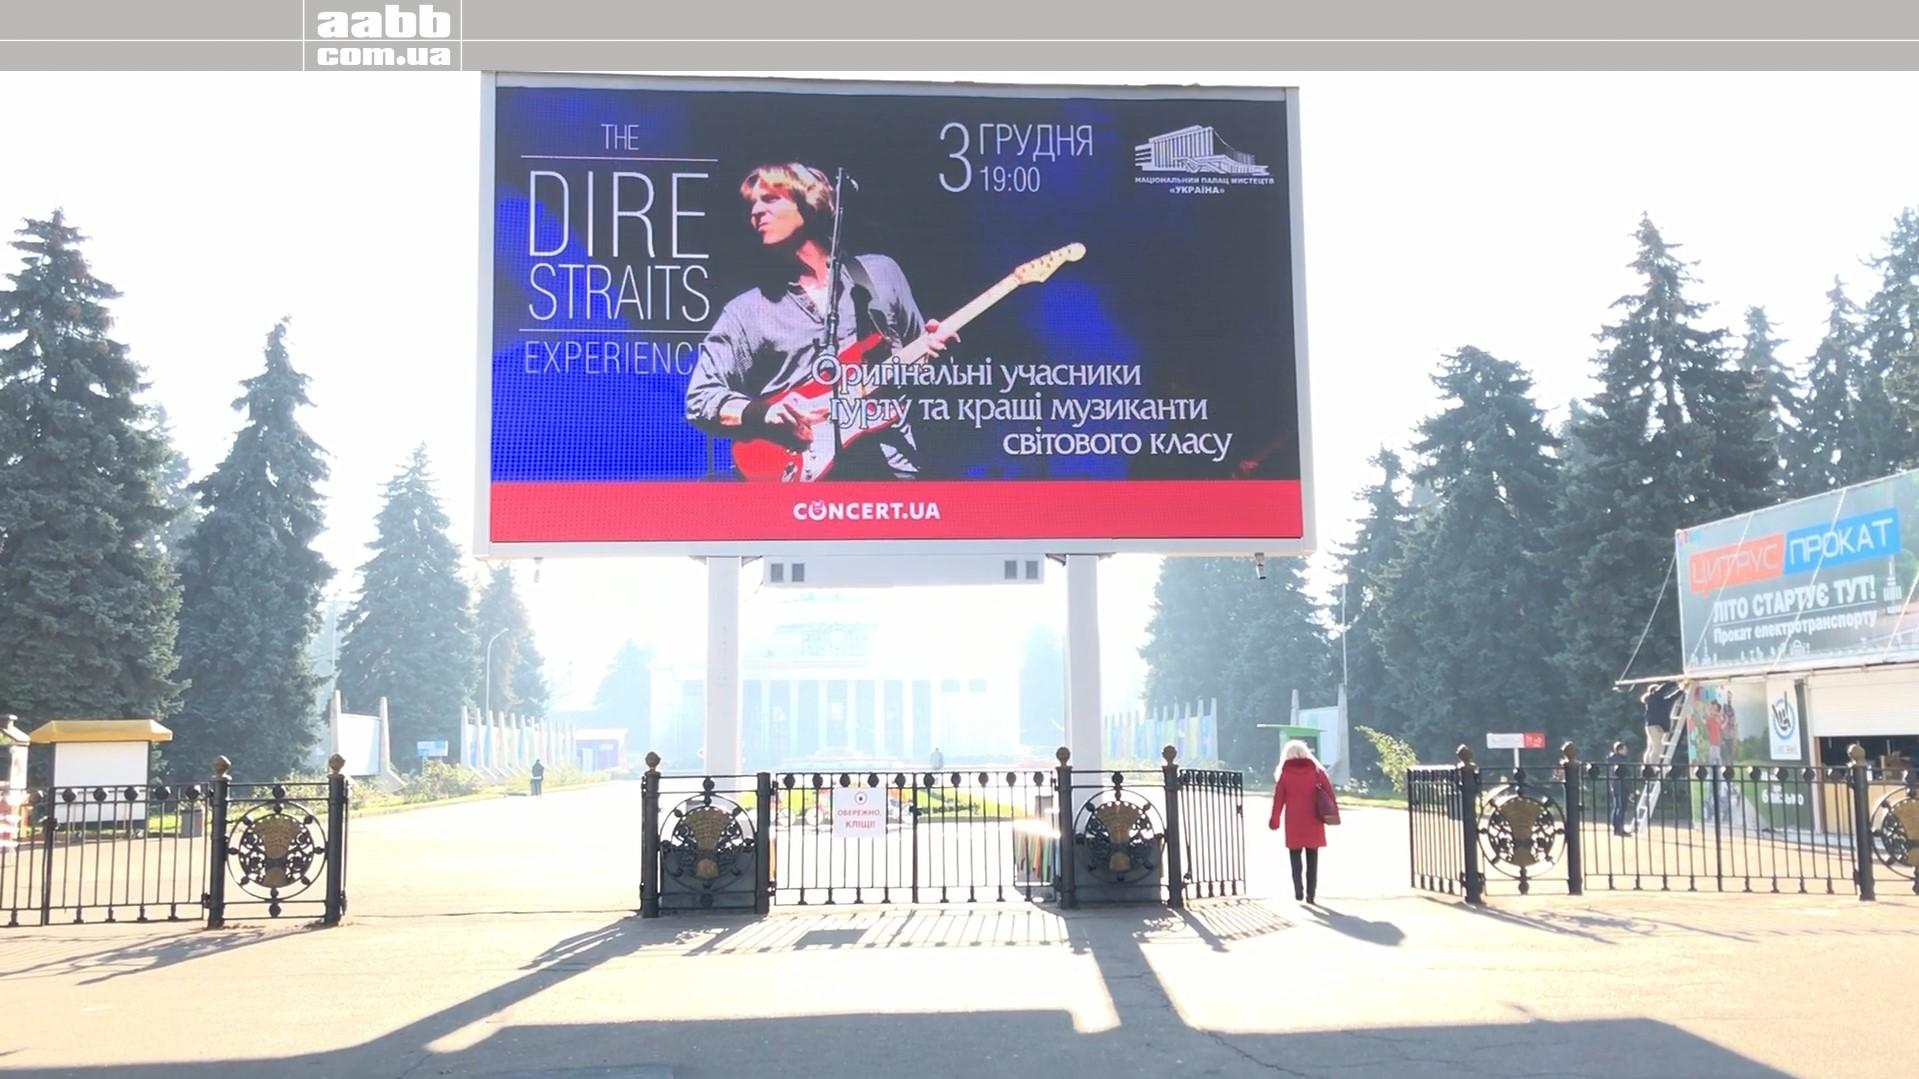 Advertising on the VDNG video screen (November 2018)